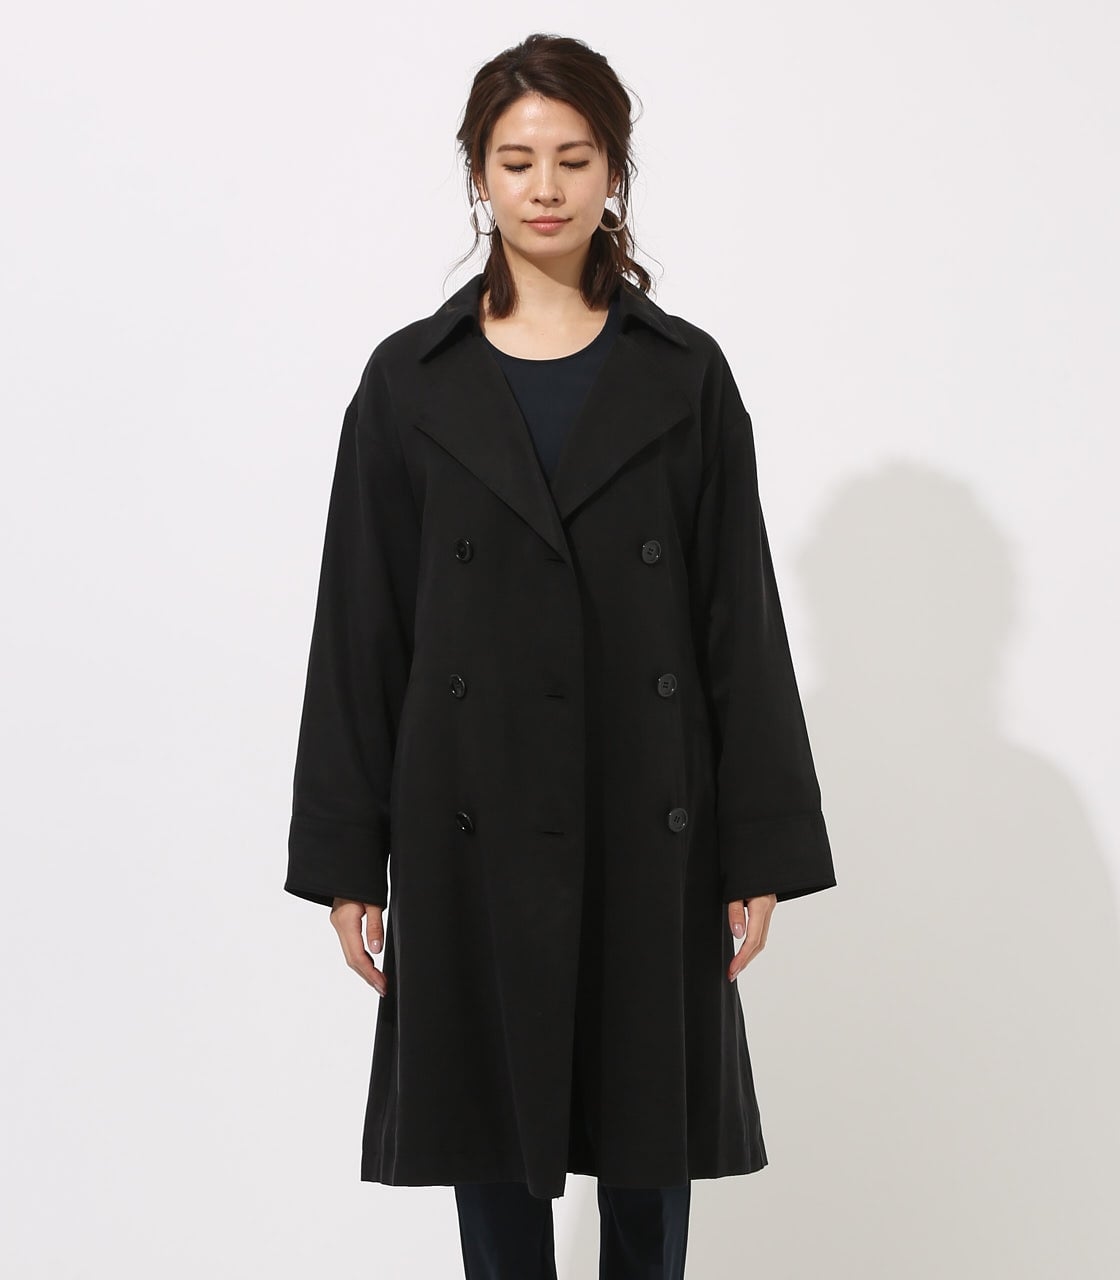 LYOCELL TRENCH COAT  詳細画像 BLK 5